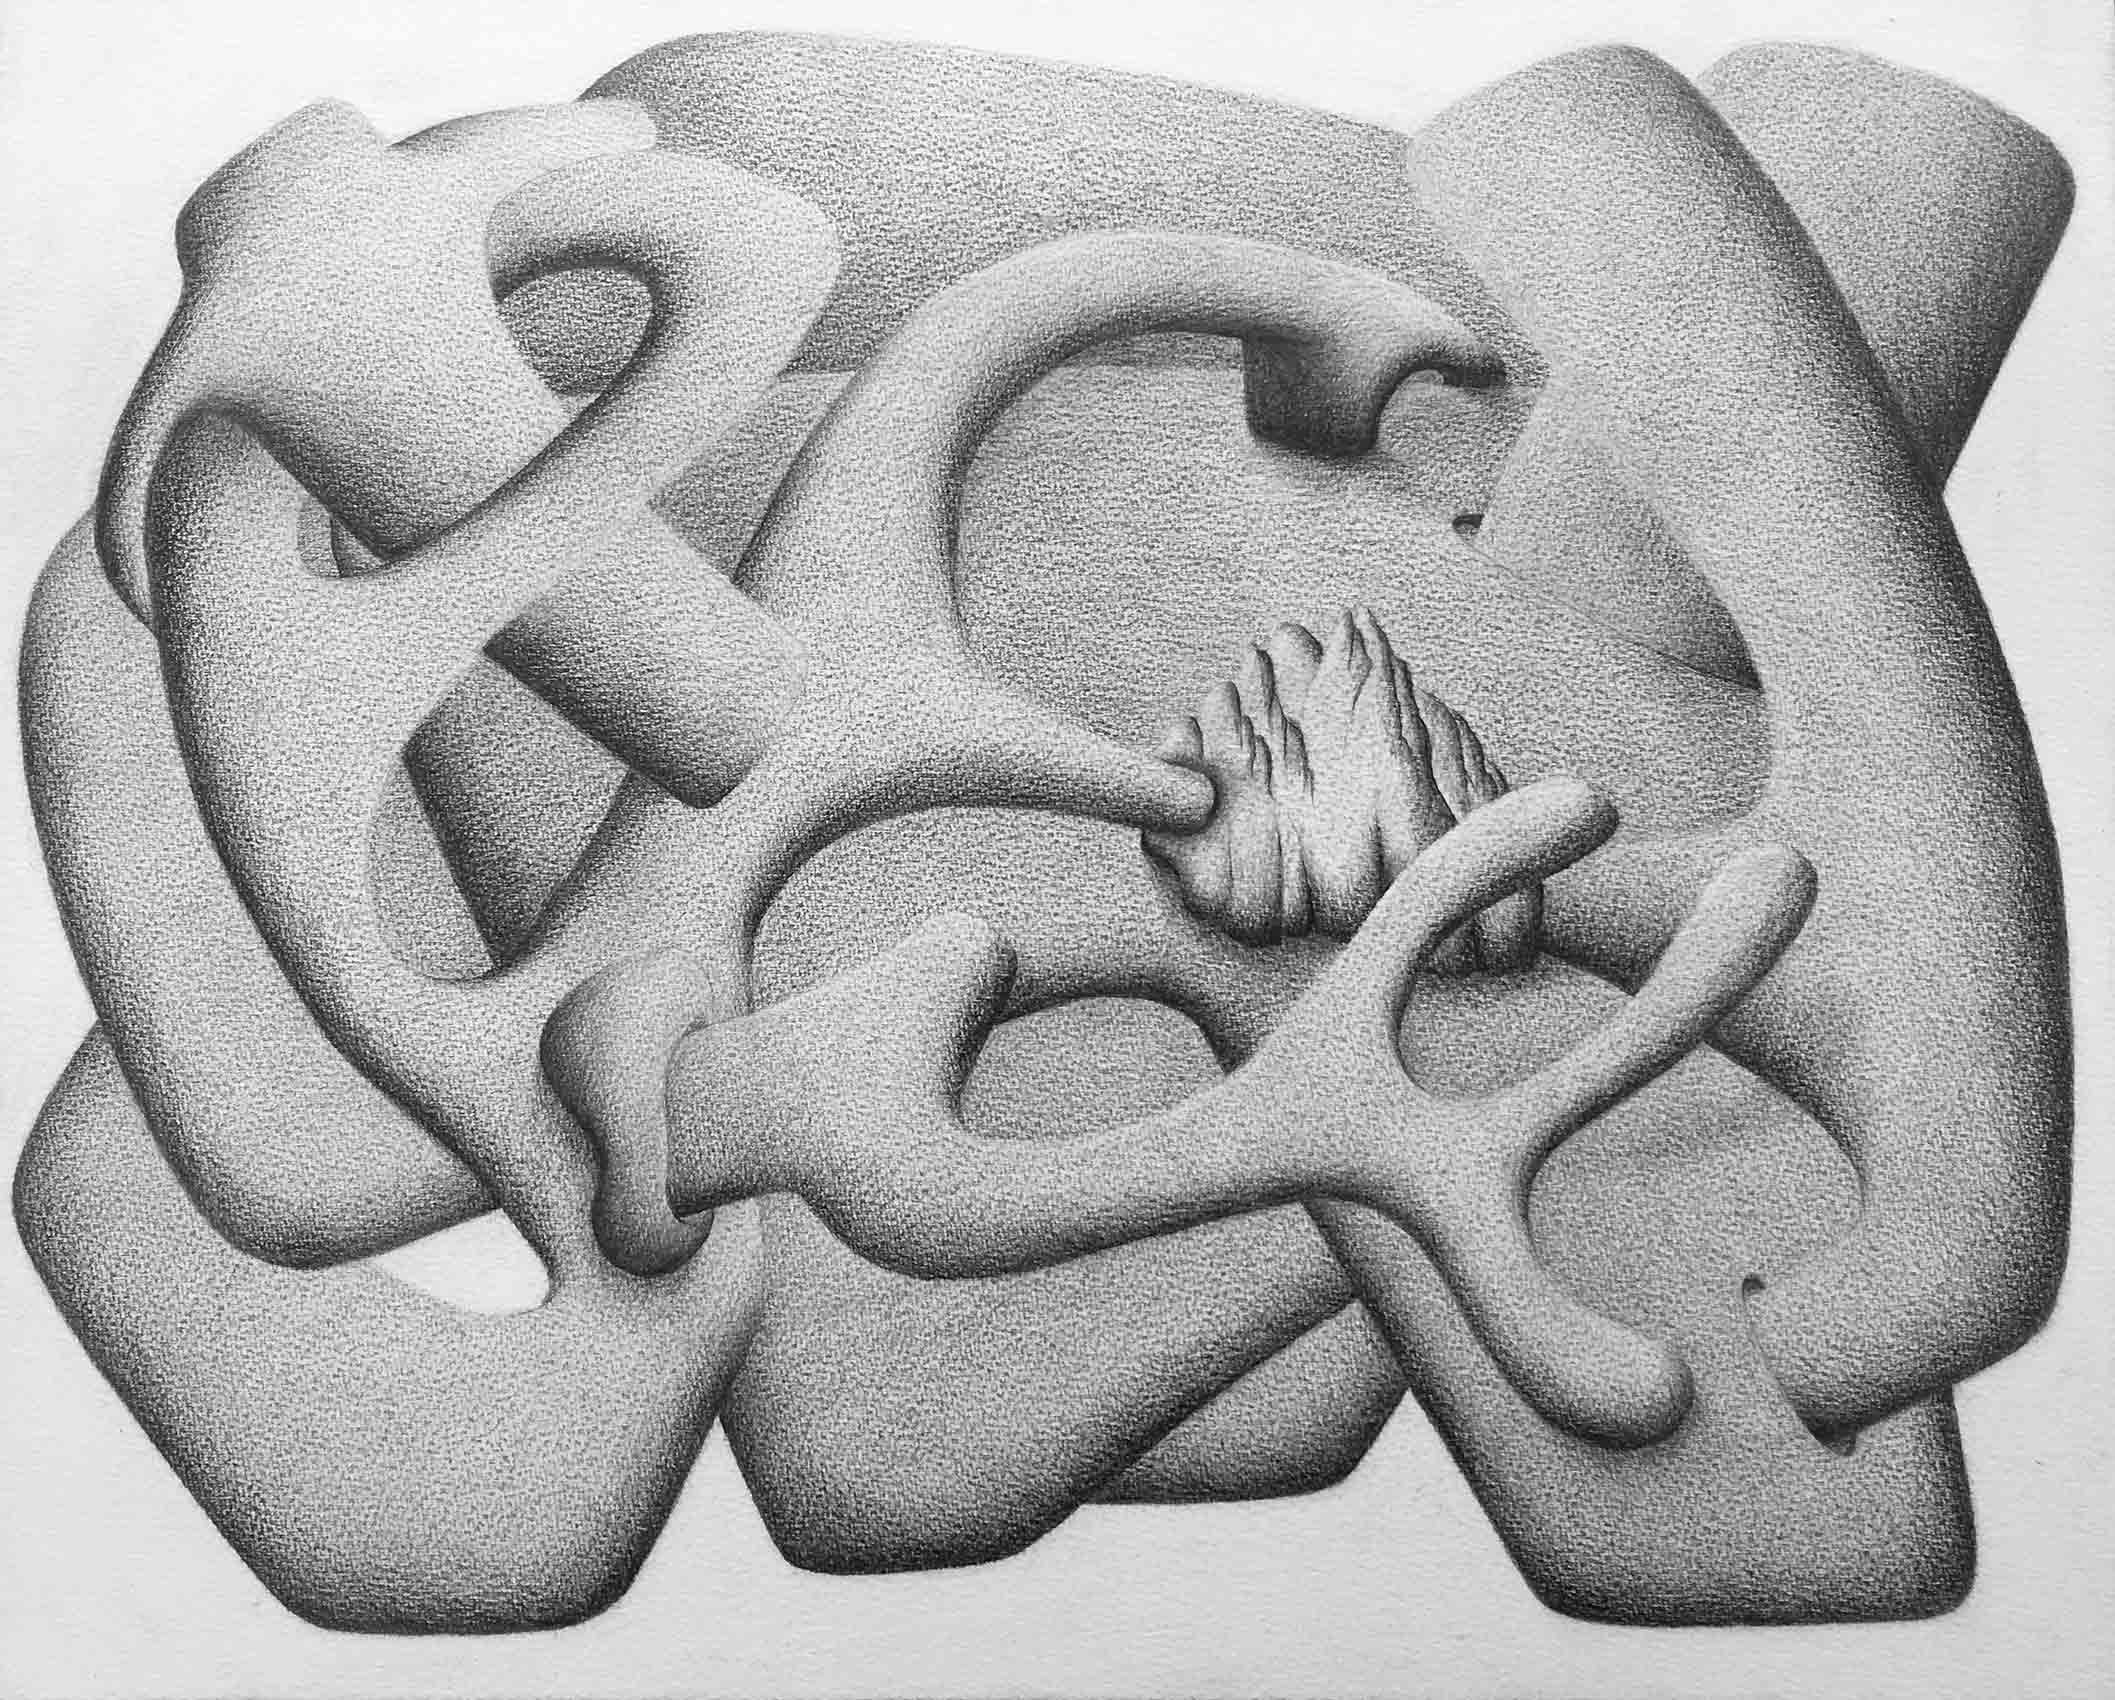 """Fugue"", N°DF10, 2019, Pencil on paper, 24cm by 32cm, 2019 ©Pascal Demeester"